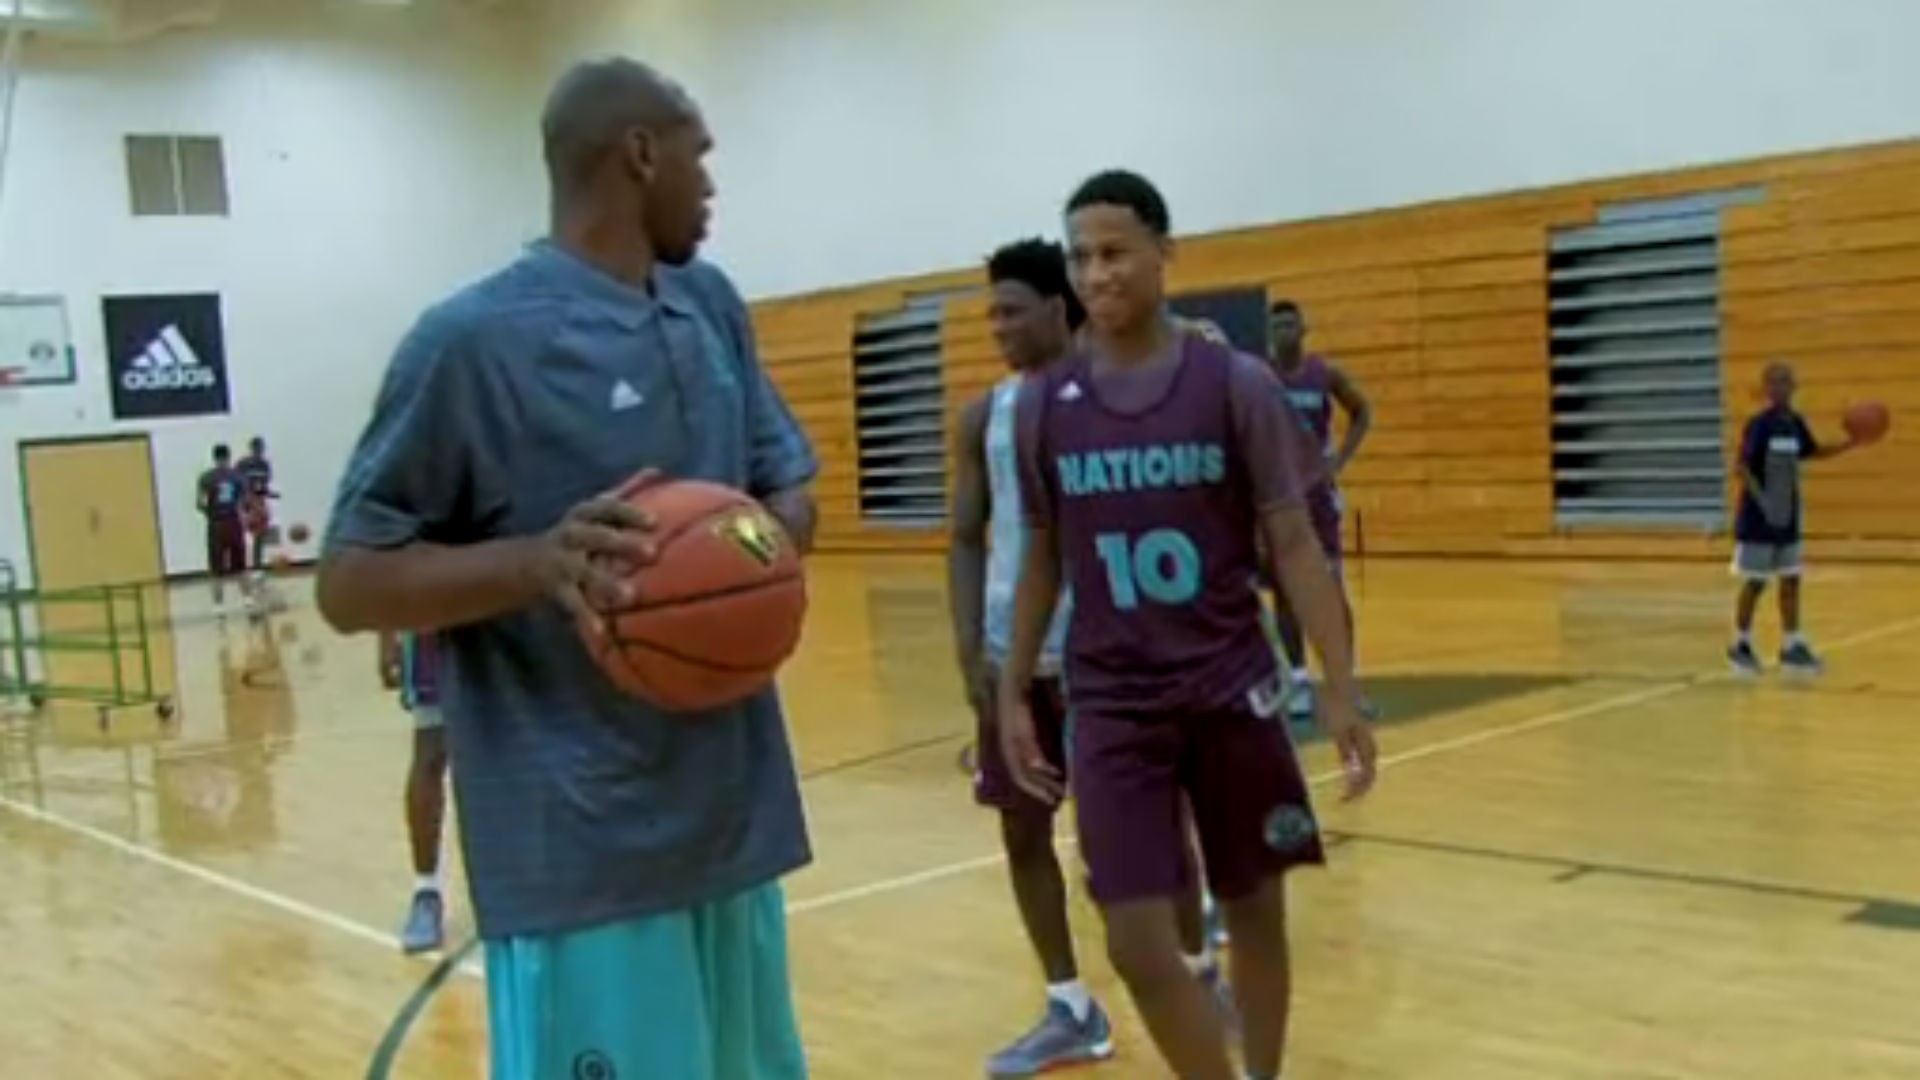 Jerry Stackhouse can still dominate high schoolers in one on one